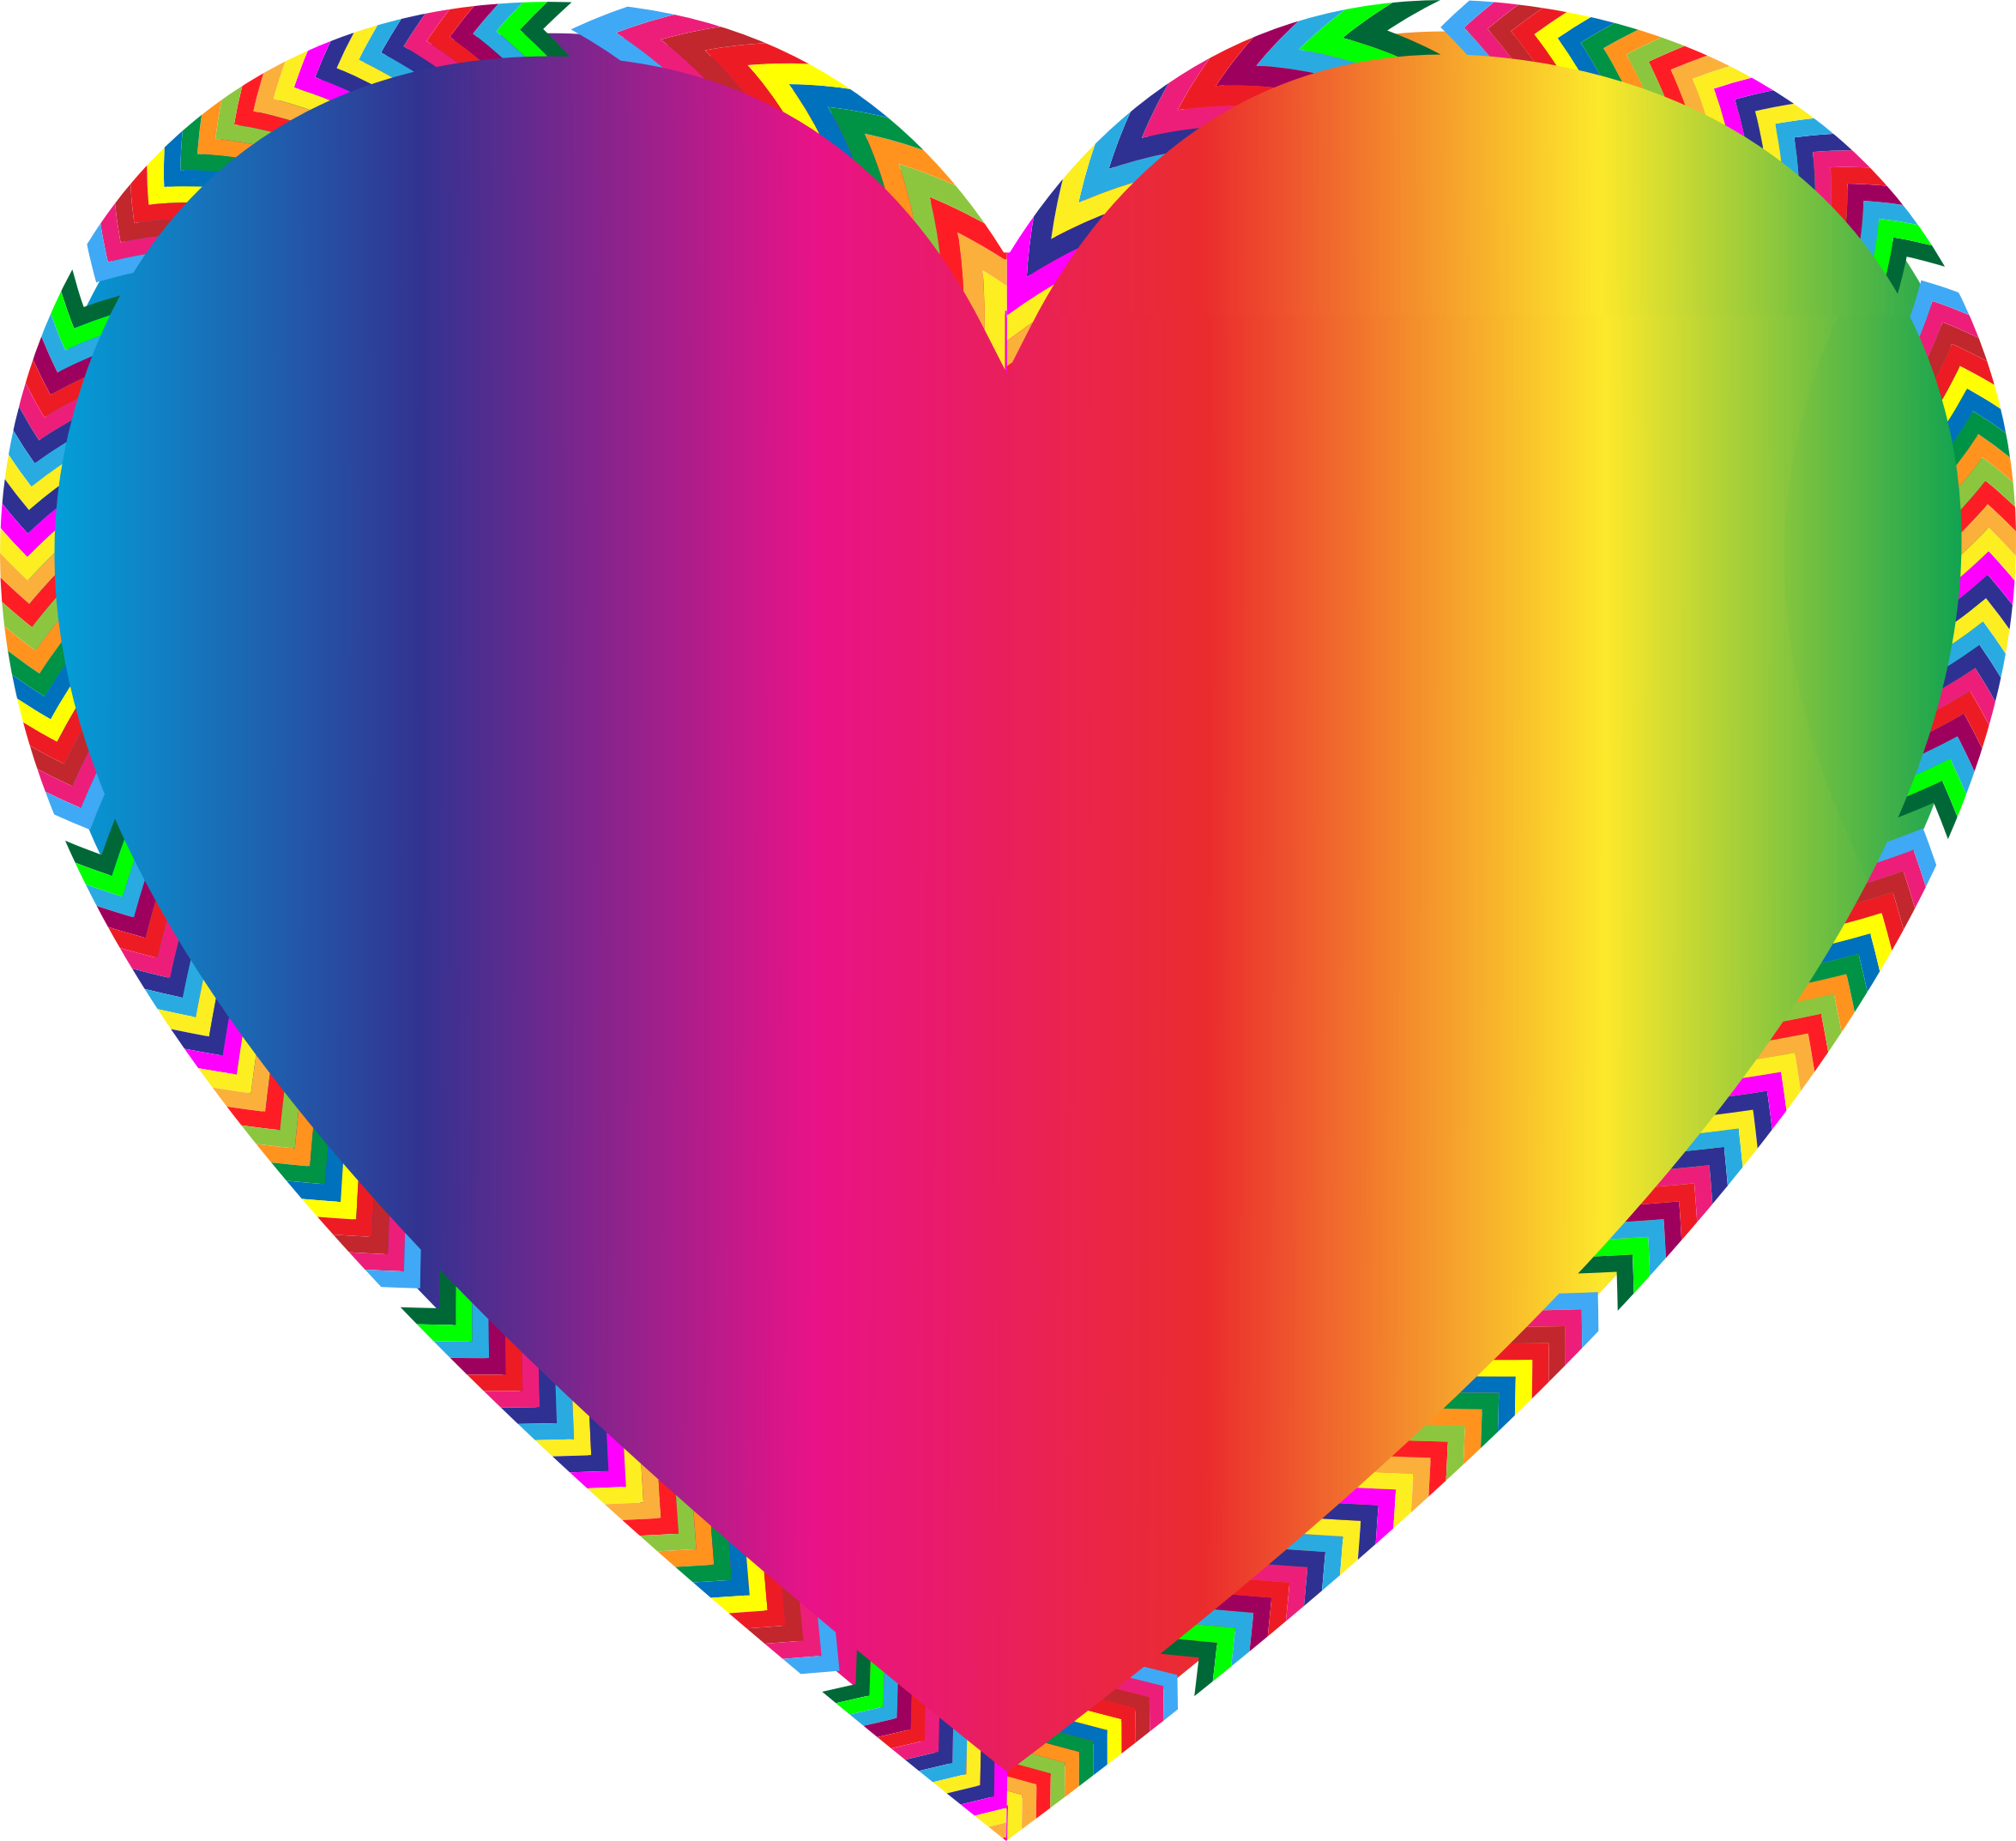 Multicolored Arrows Heart Filled by GDJ